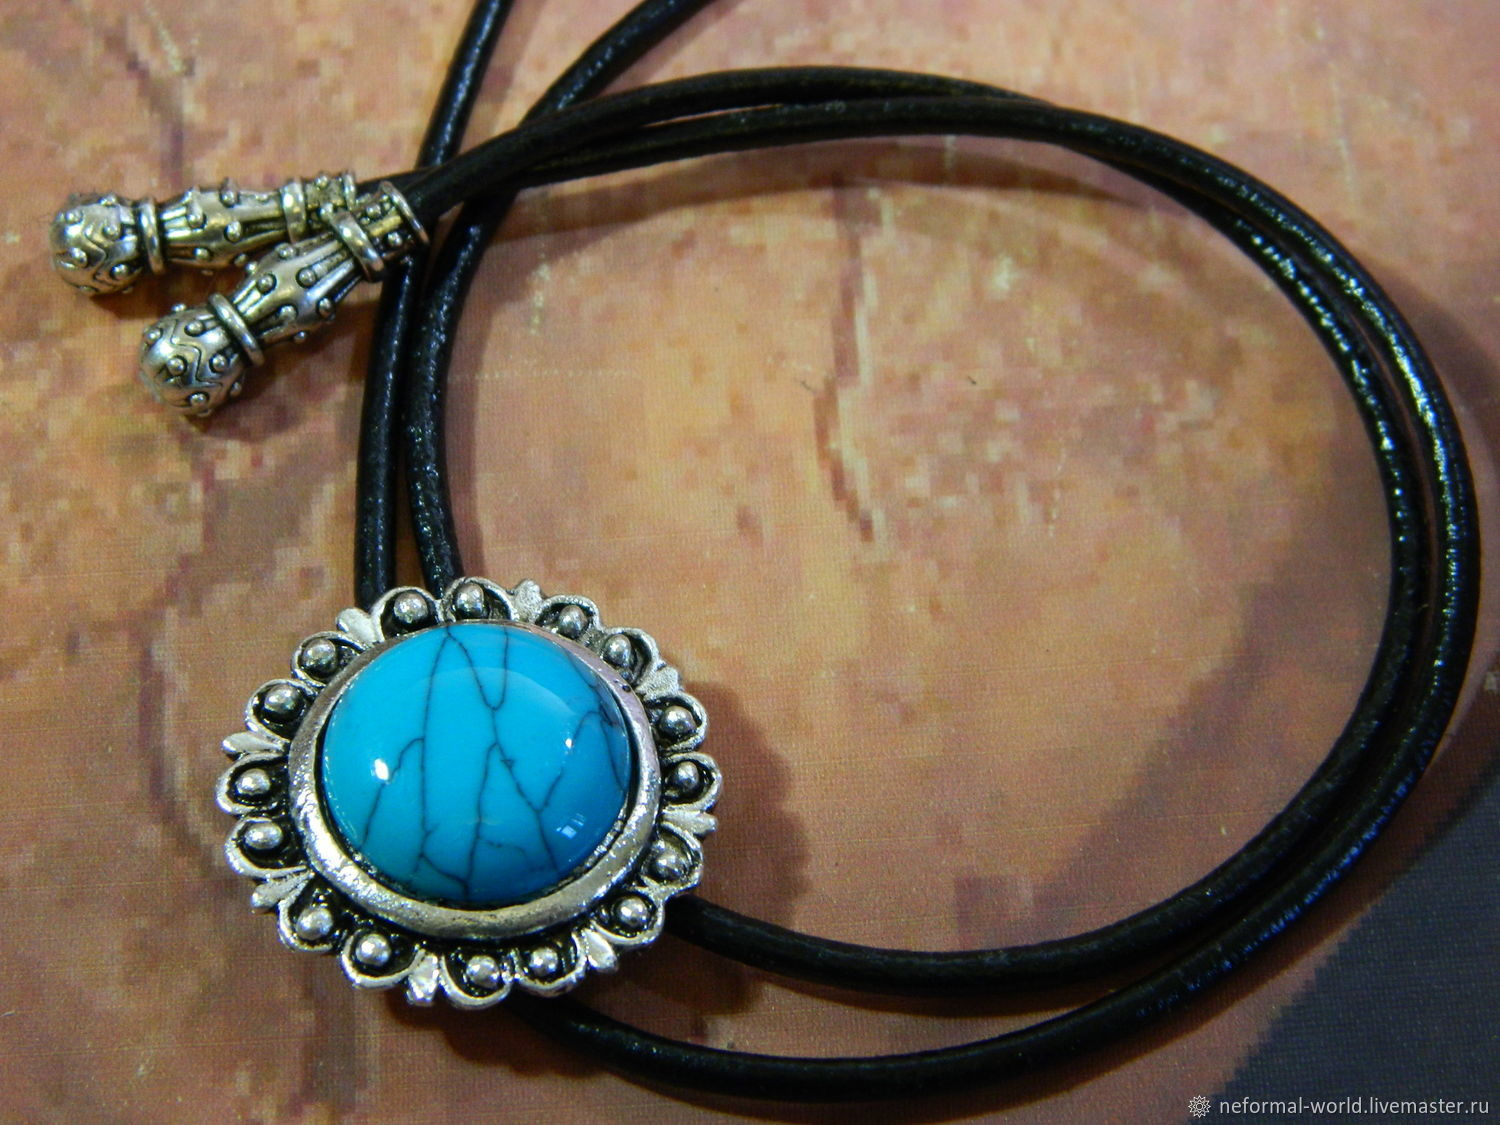 BOLO TIE WITH BLUE STONE 'FLOWER PATTERN' ˈ IN SILVER, Ties, Saratov,  Фото №1